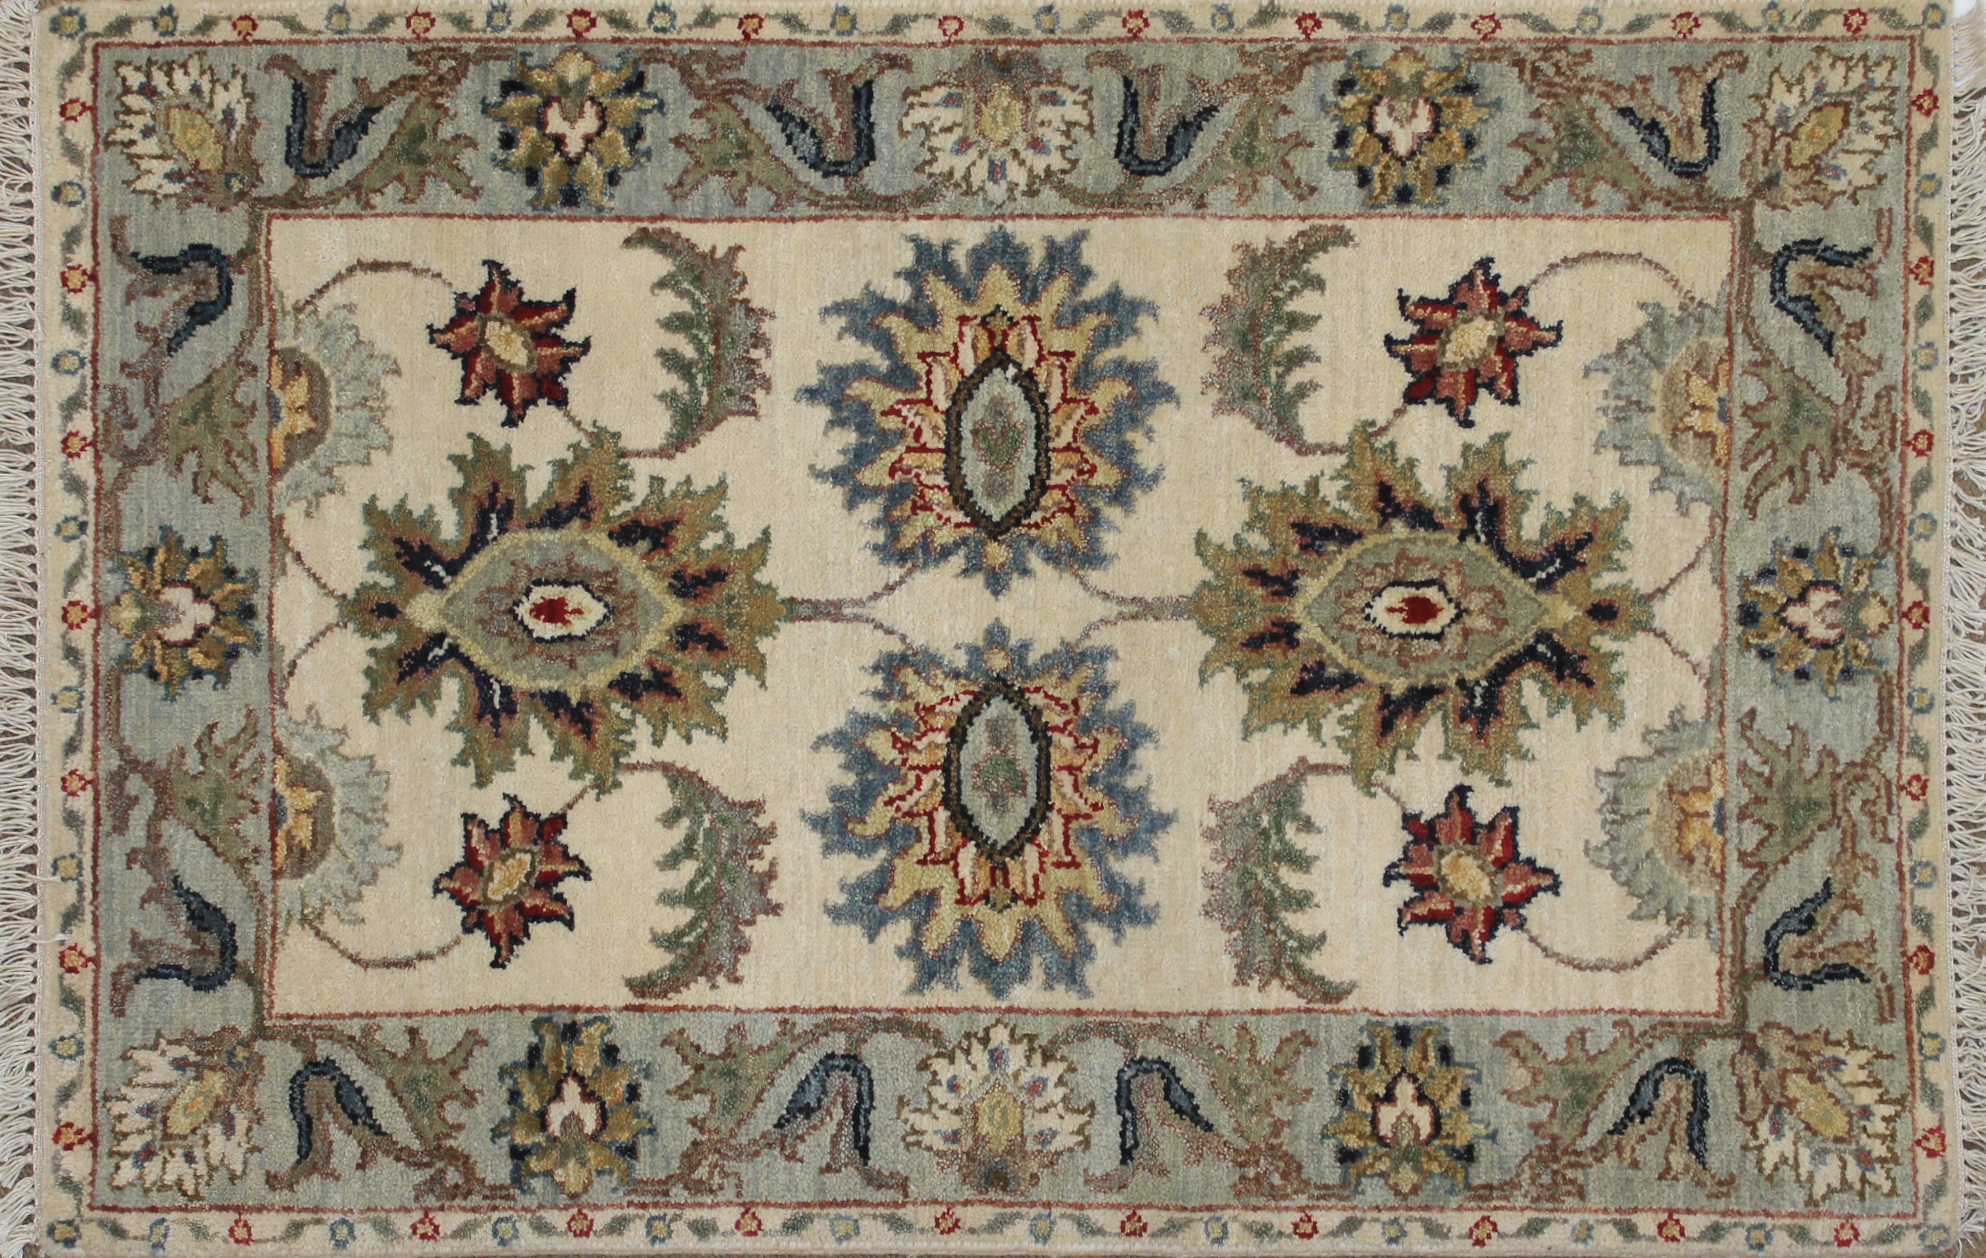 2X3 Traditional Hand Knotted Wool Area Rug - MR025031